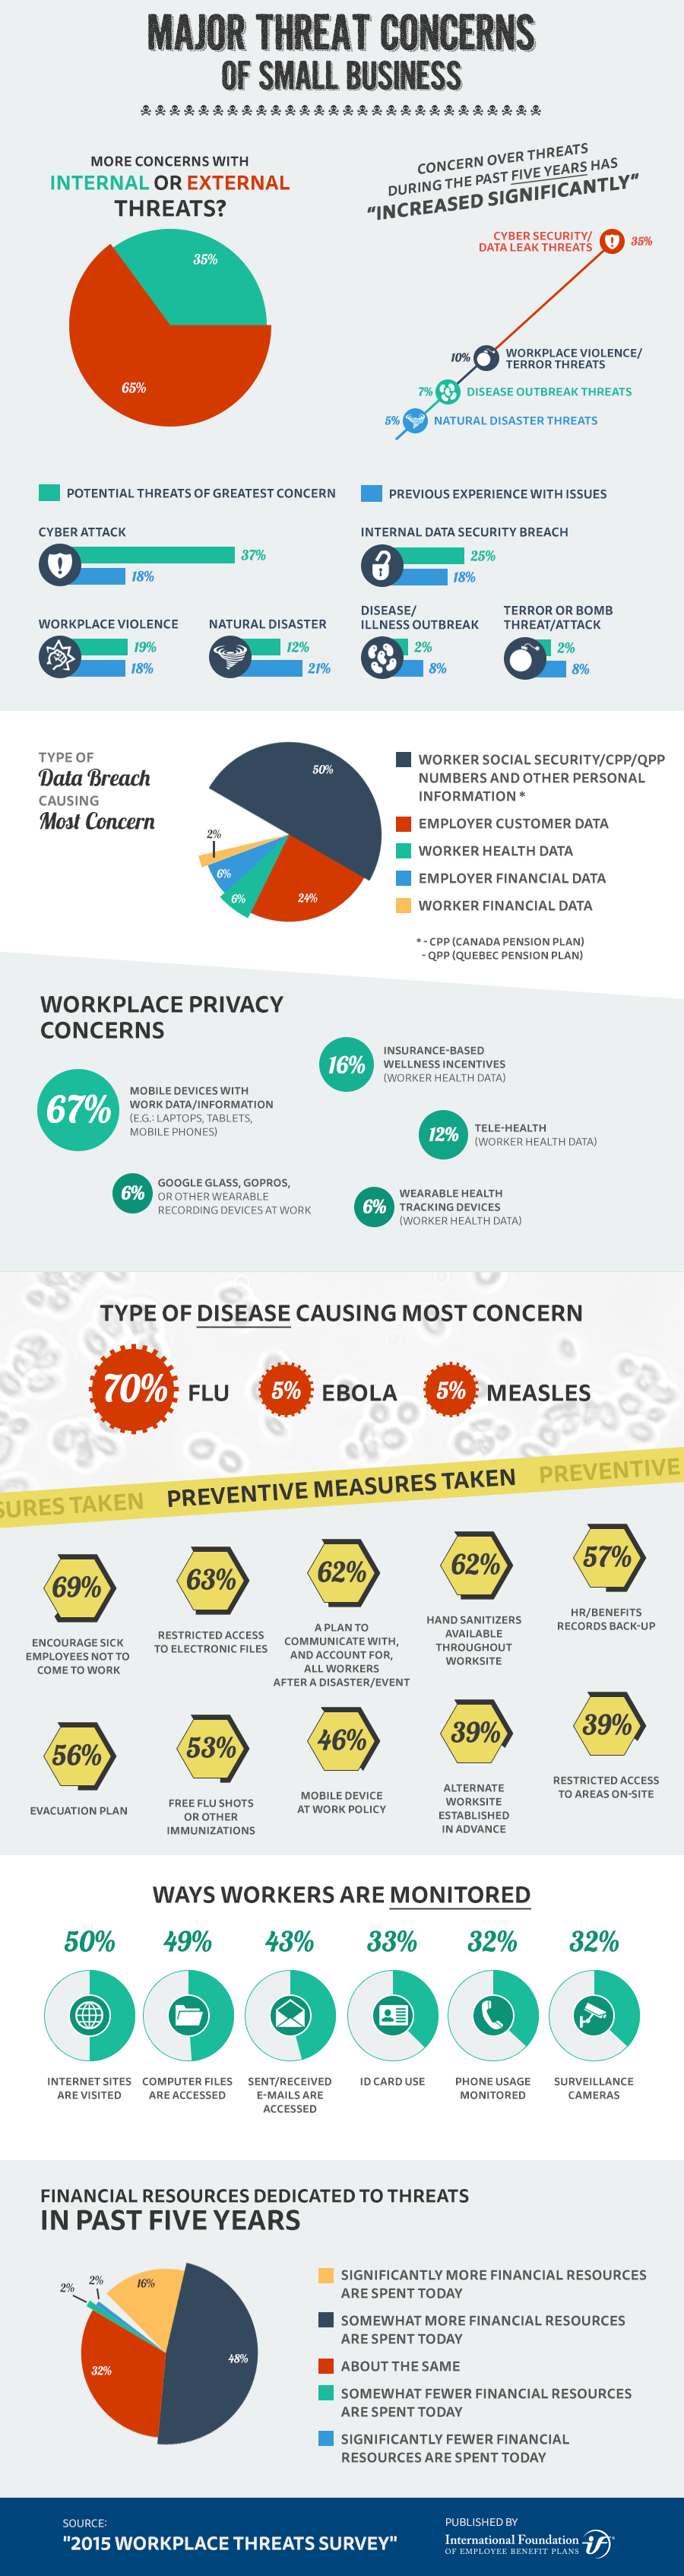 Infographic: Major Threat Concerns of Small Business